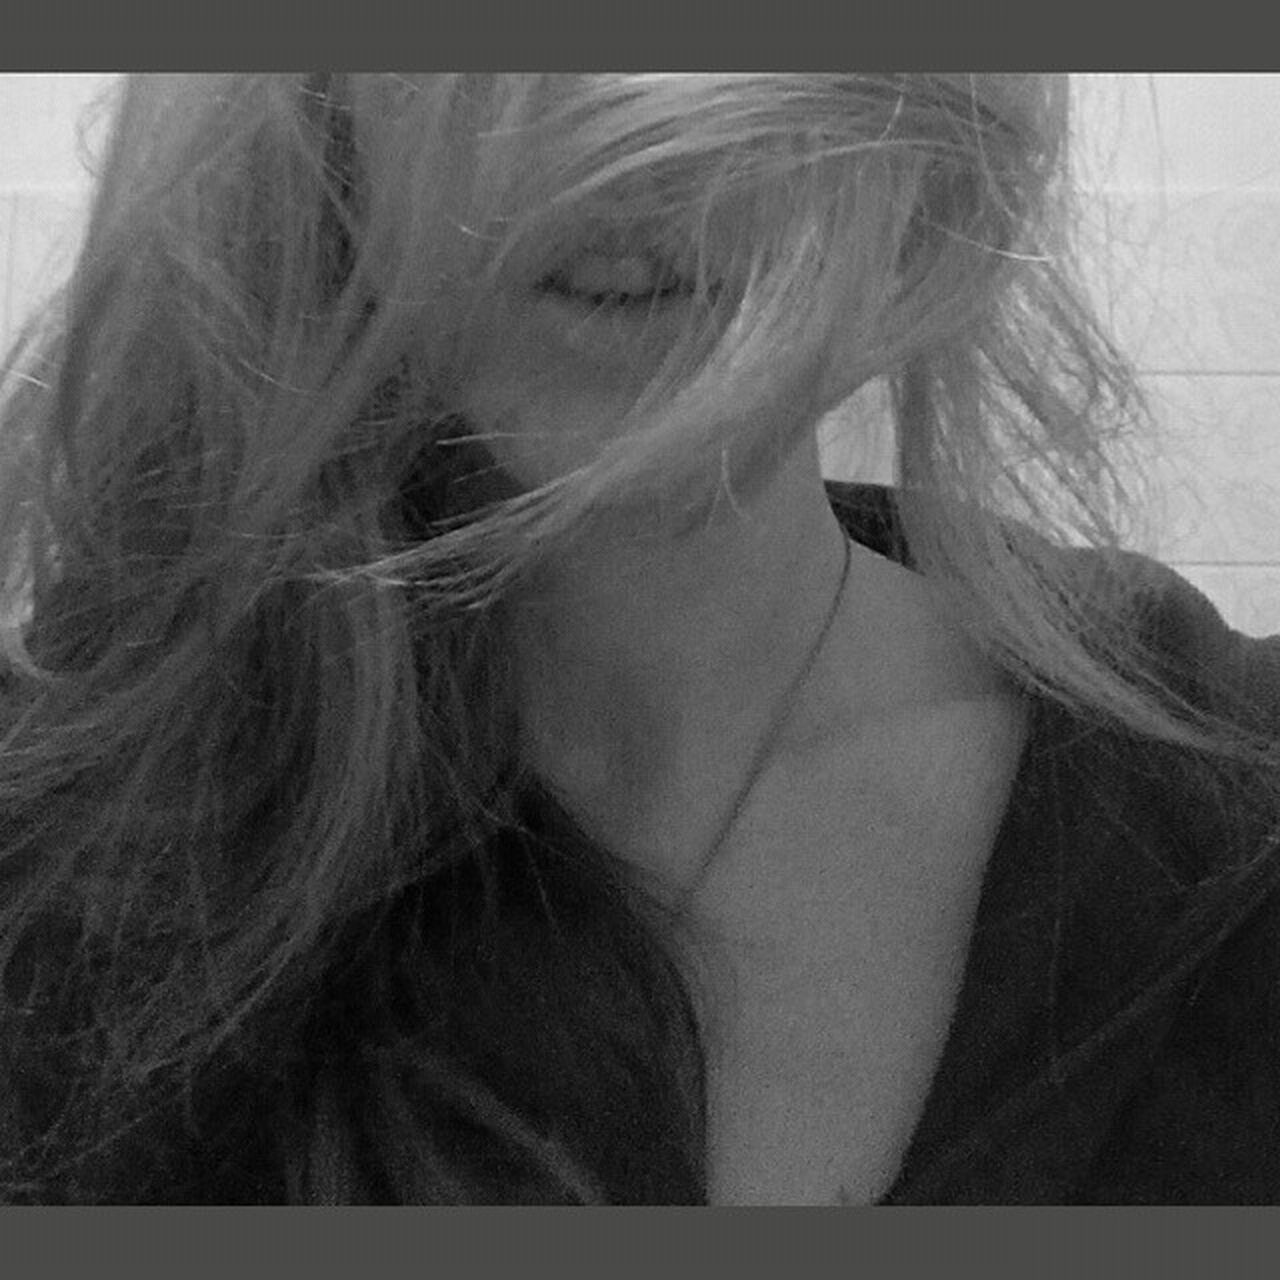 B&w Blackandwhite Blackandwhite Photography Photoshoot Grey Day Strange Days Art Artistic Photo Artistic Photography Storm Let Your Hair Down Stormy Weather Sadness Or Not?